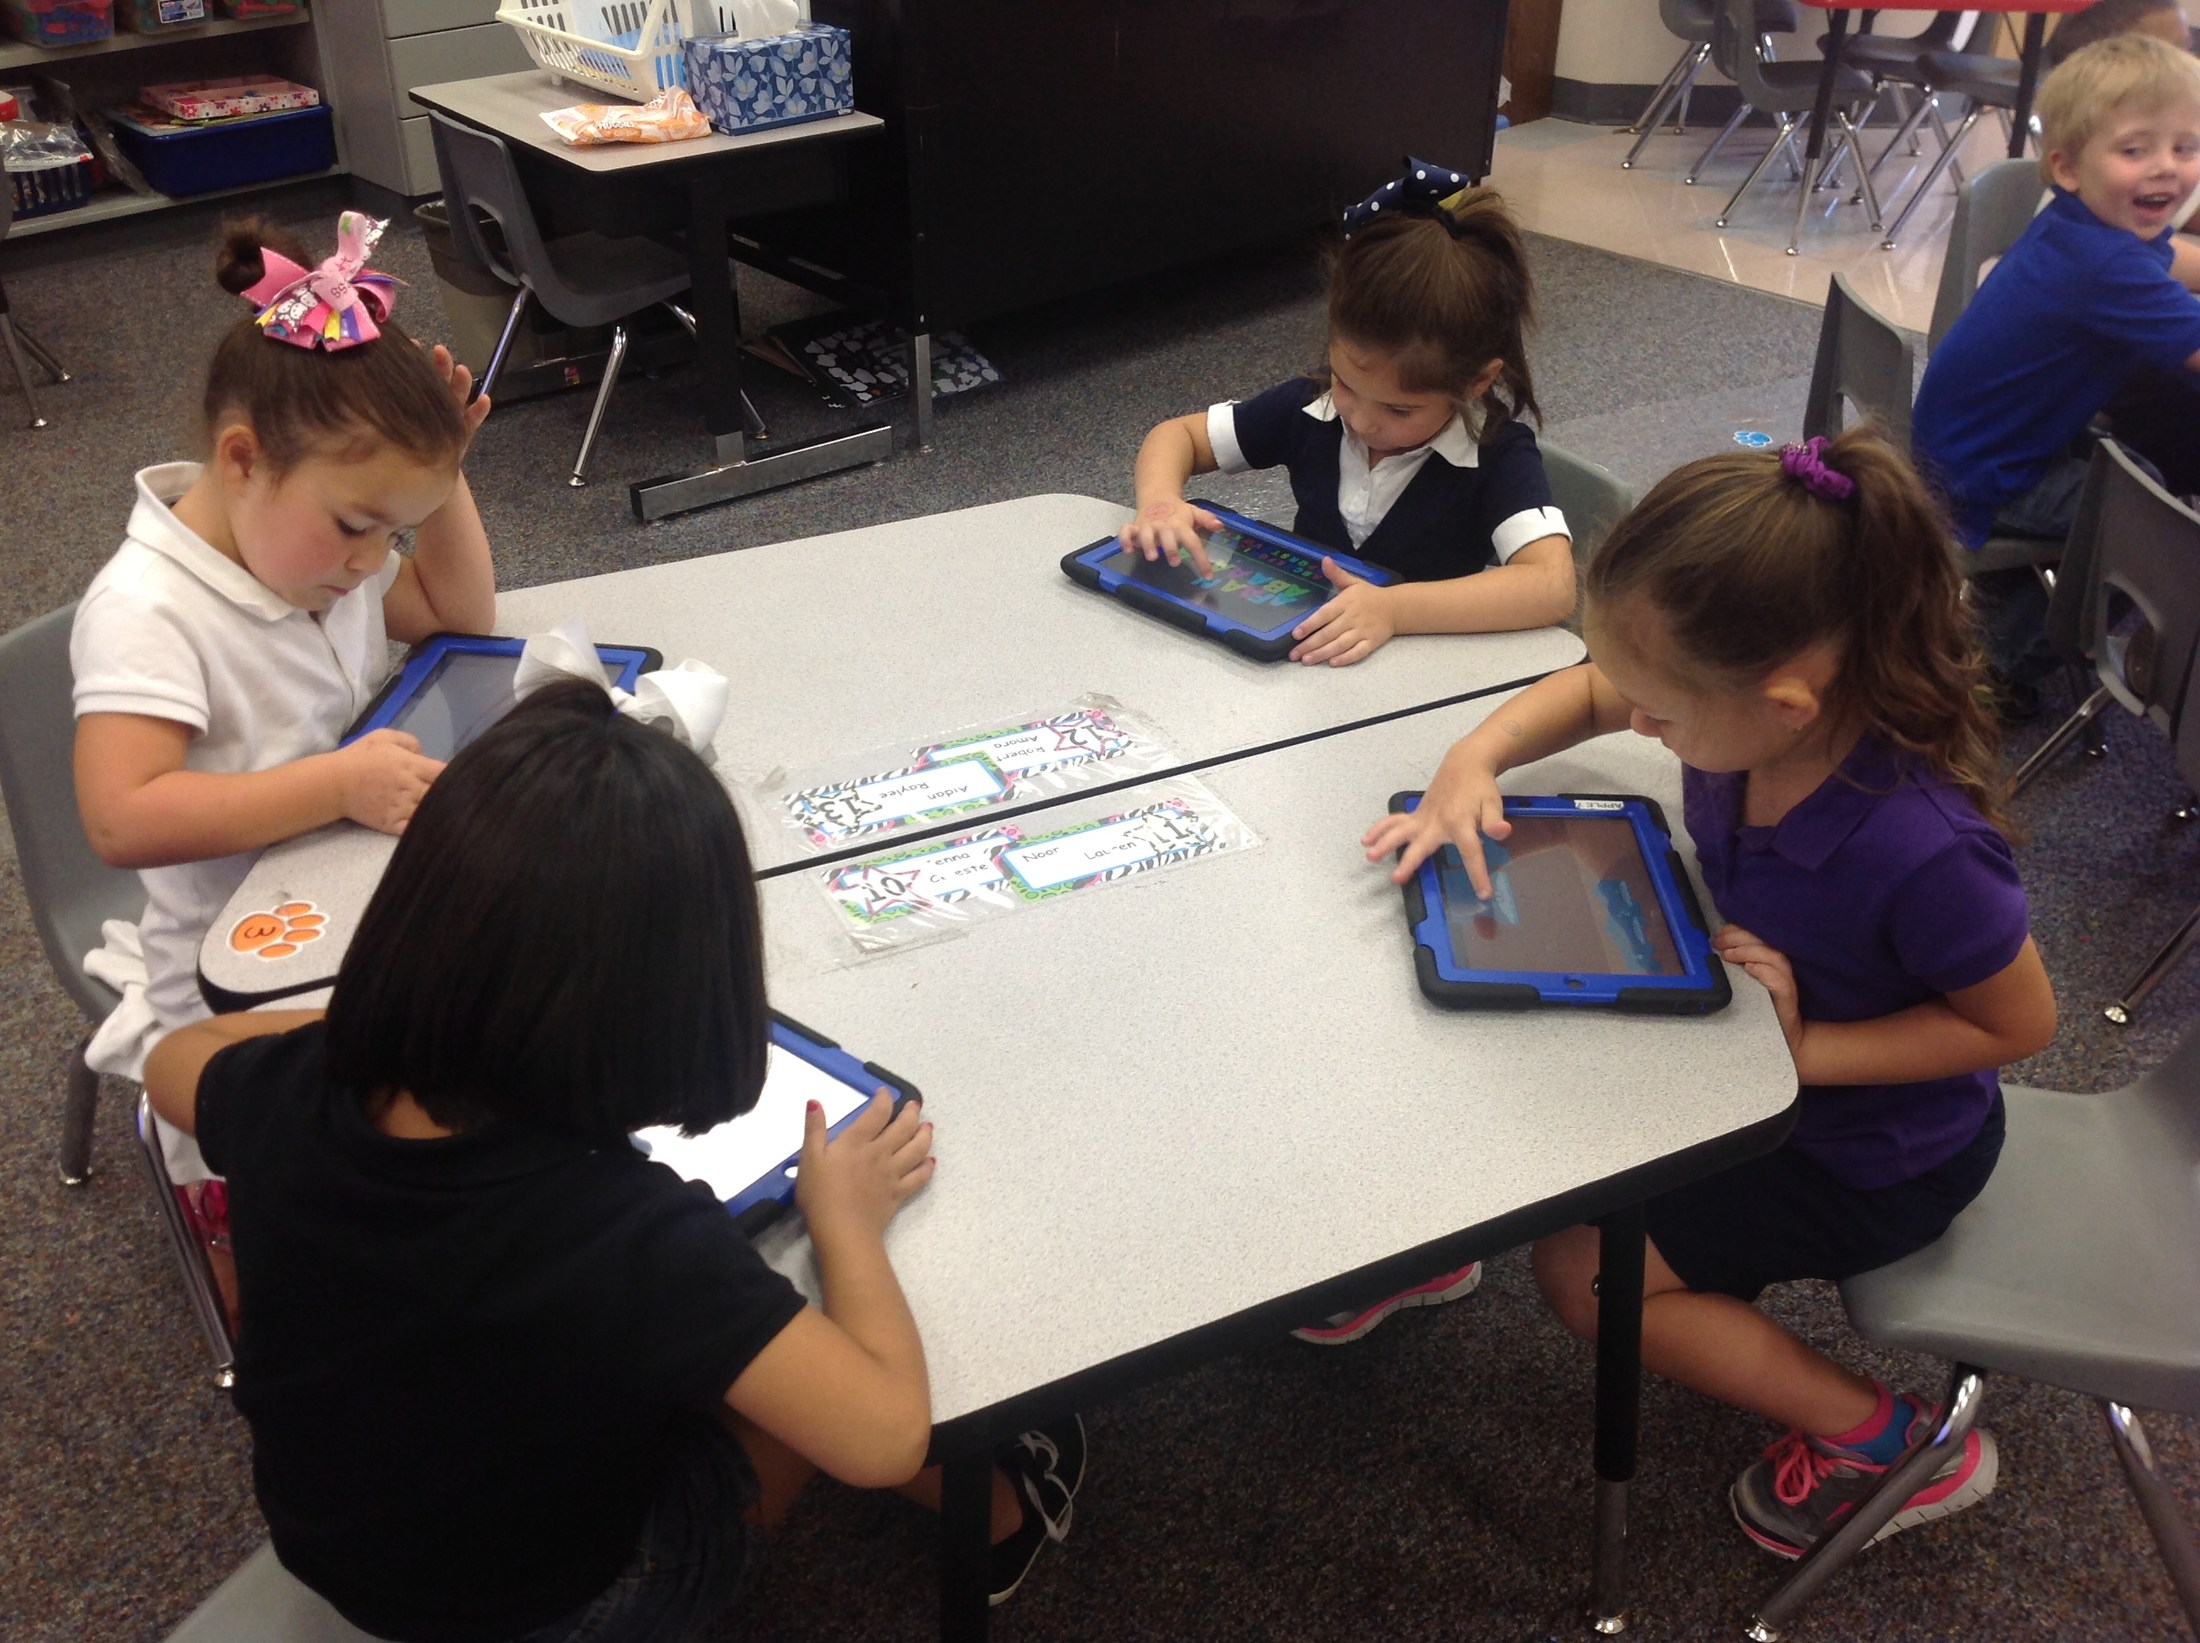 Students working with iPads